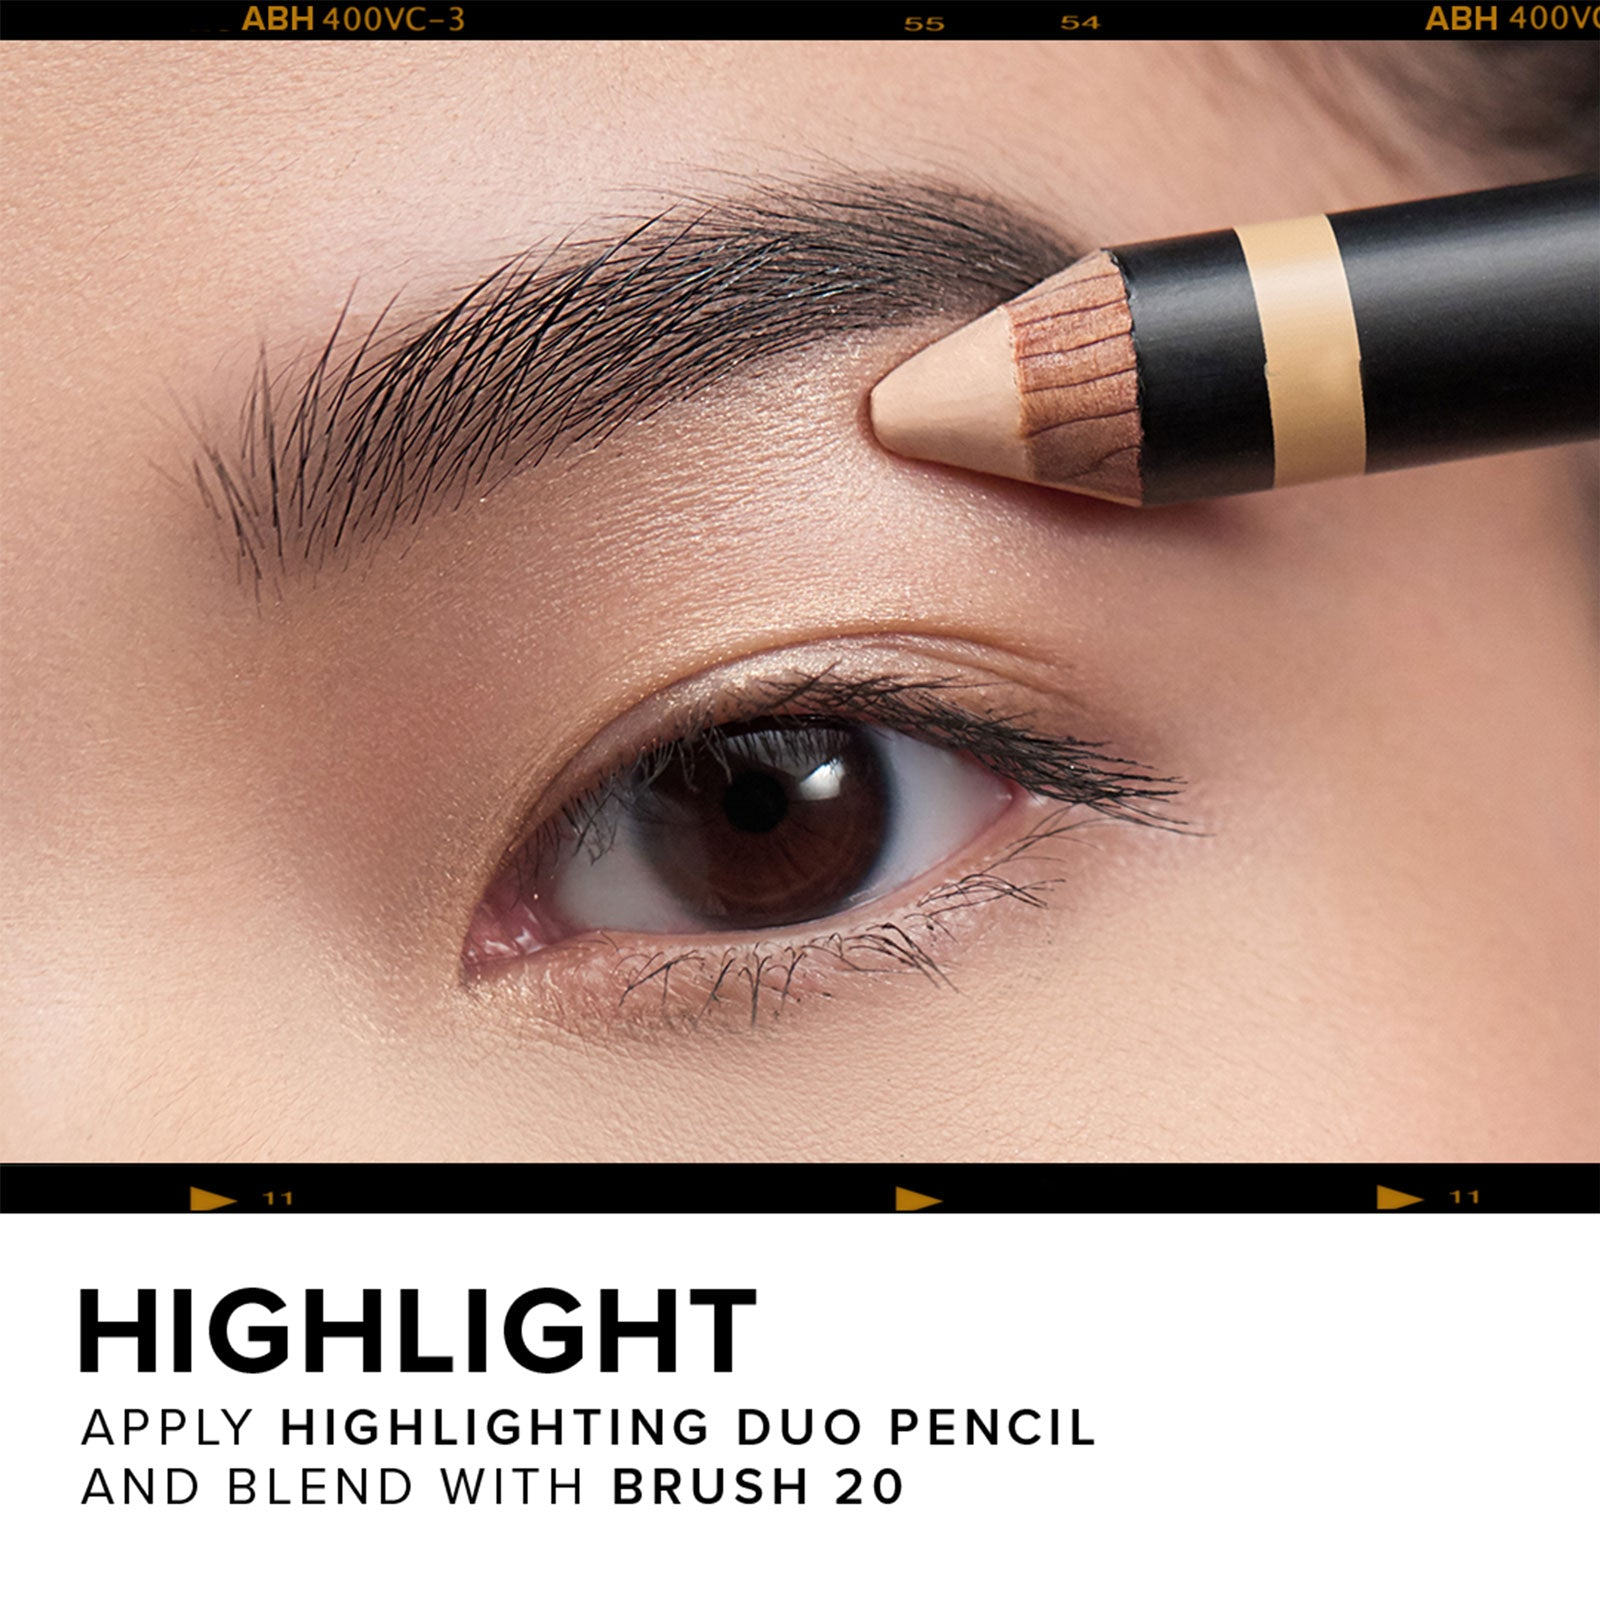 Anastasia Beverly Hills Highlighting Duo Pencil 4.8g